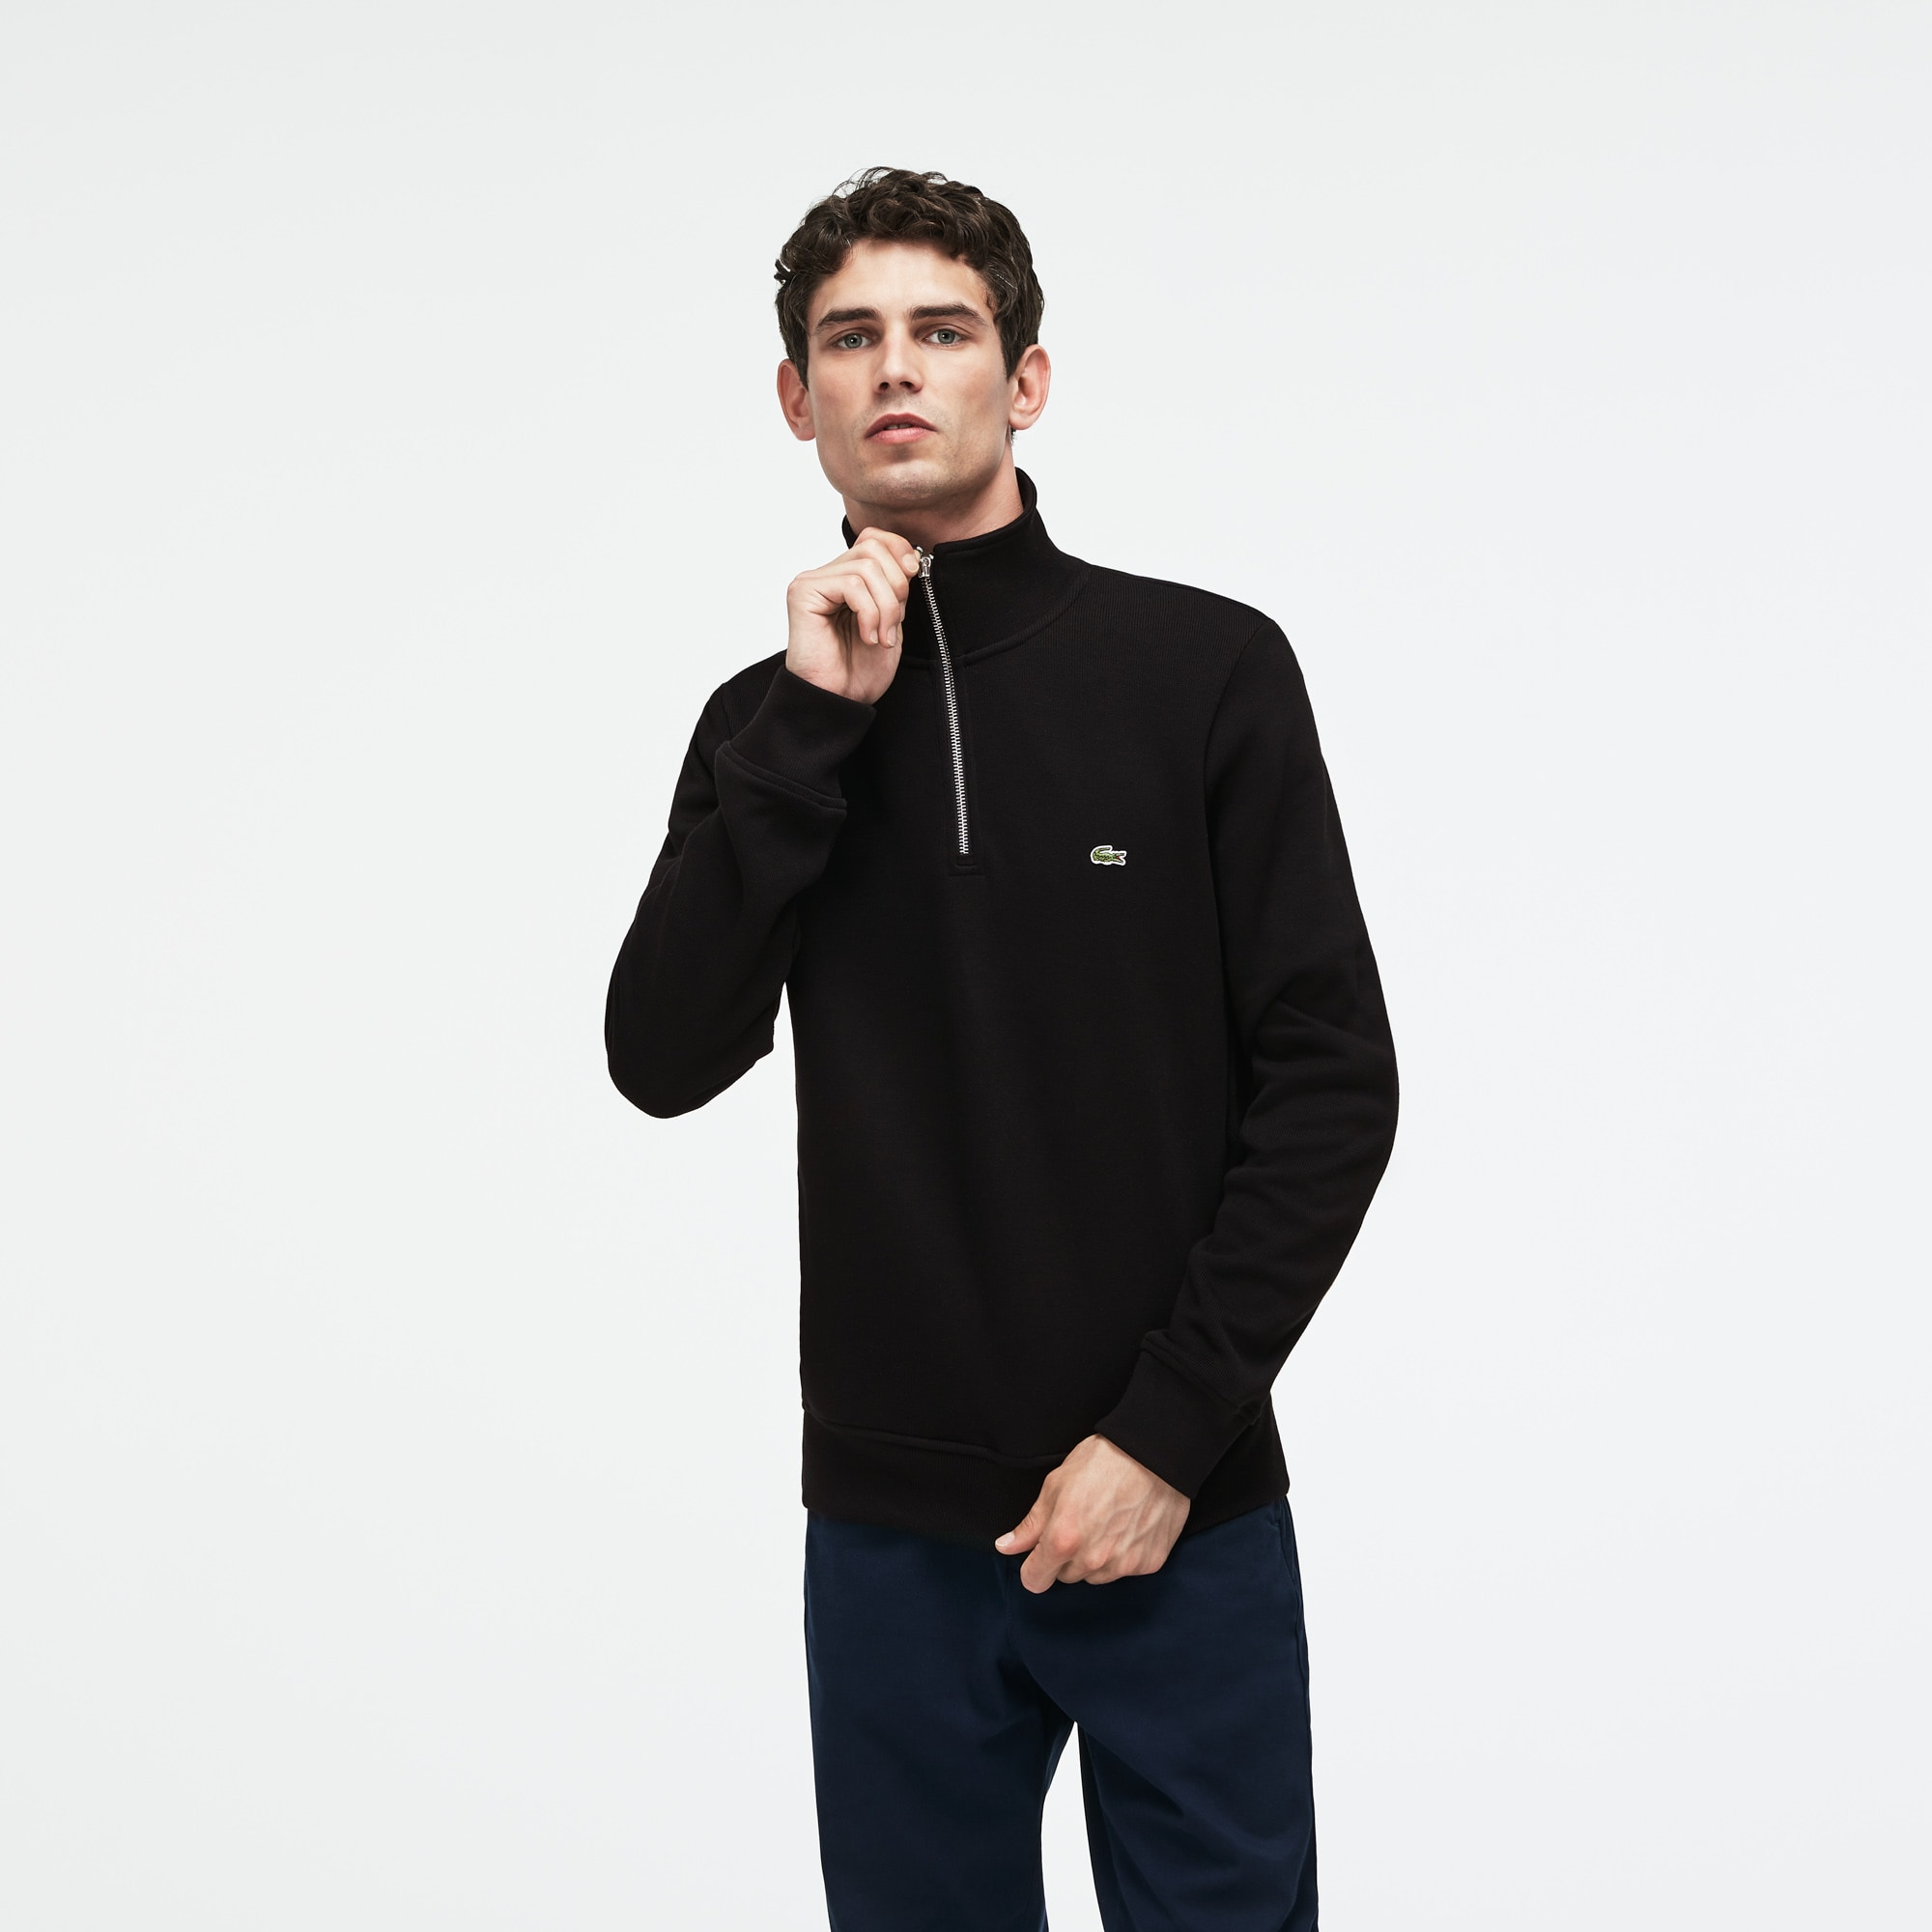 Men's Flat Ribbed Zippered Stand-Up Collar Sweatshirt